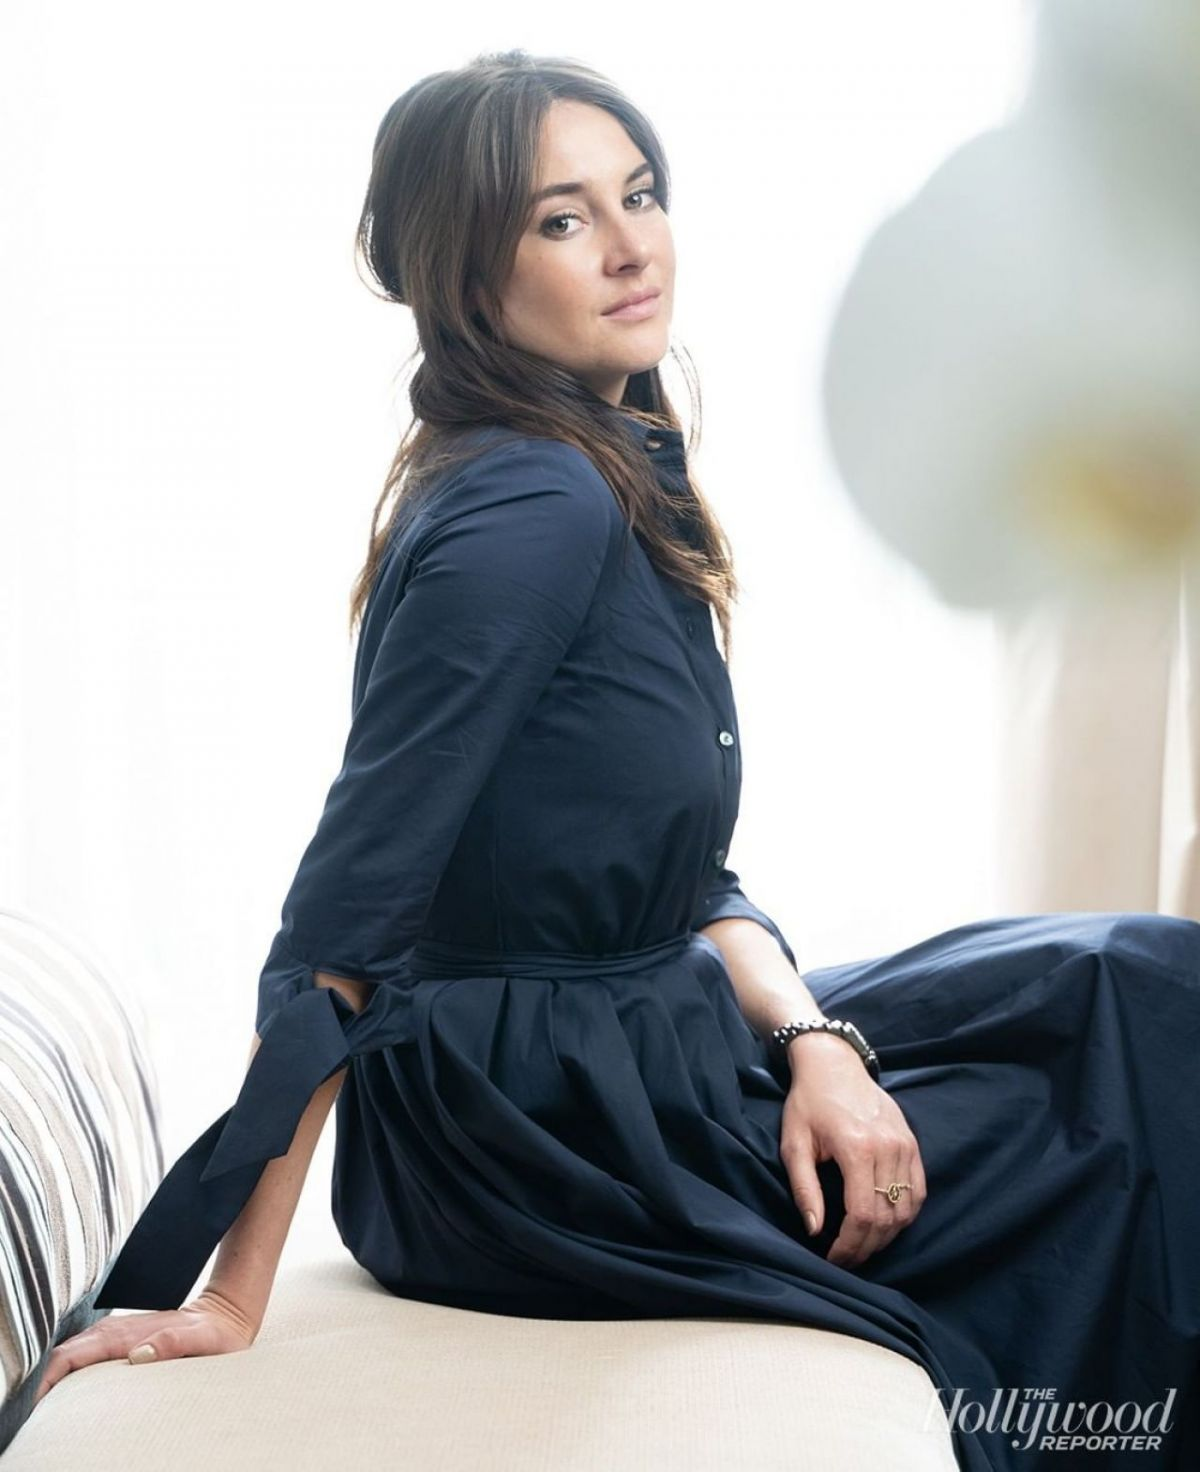 SHAILENE WOODLEY for The Hollywood Reporter, May 2019 ...